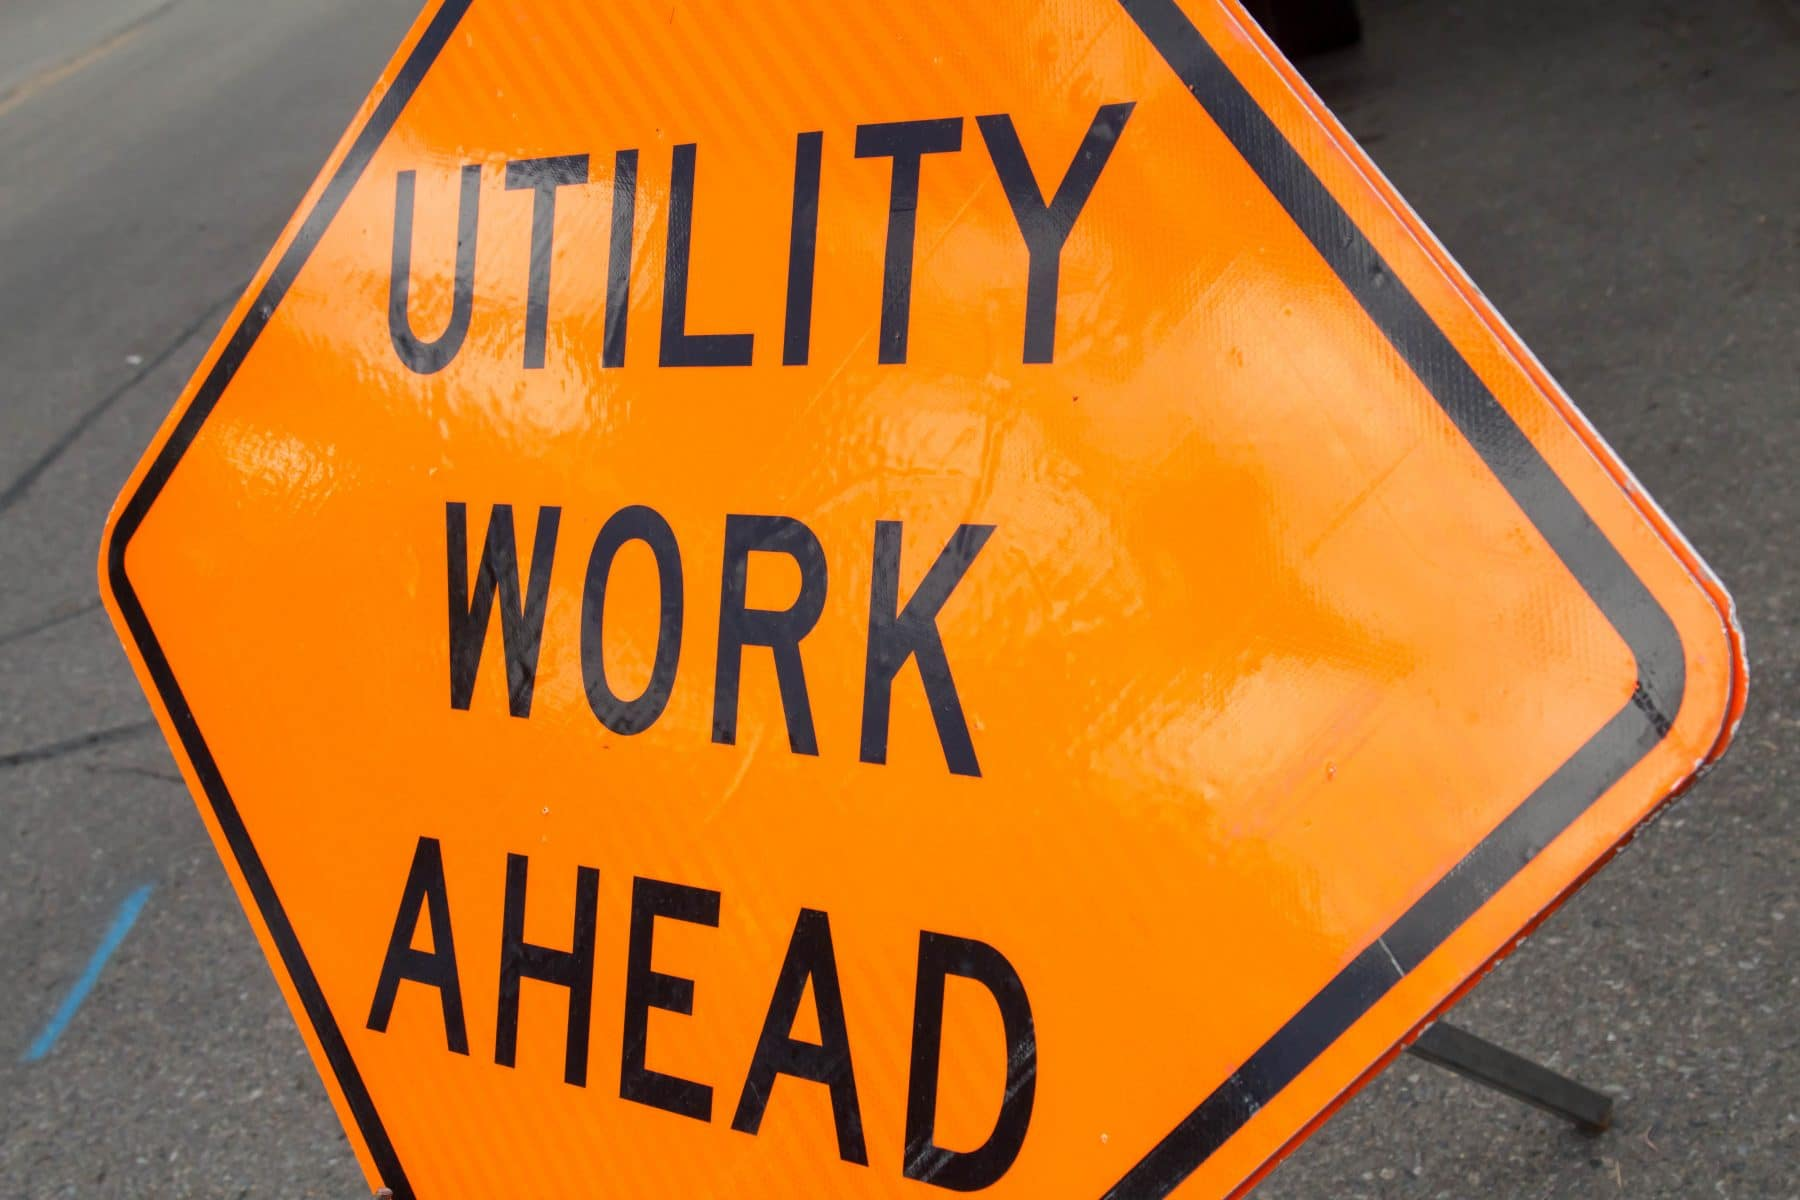 Portions of North Broadway Street to be closed for utility-related work